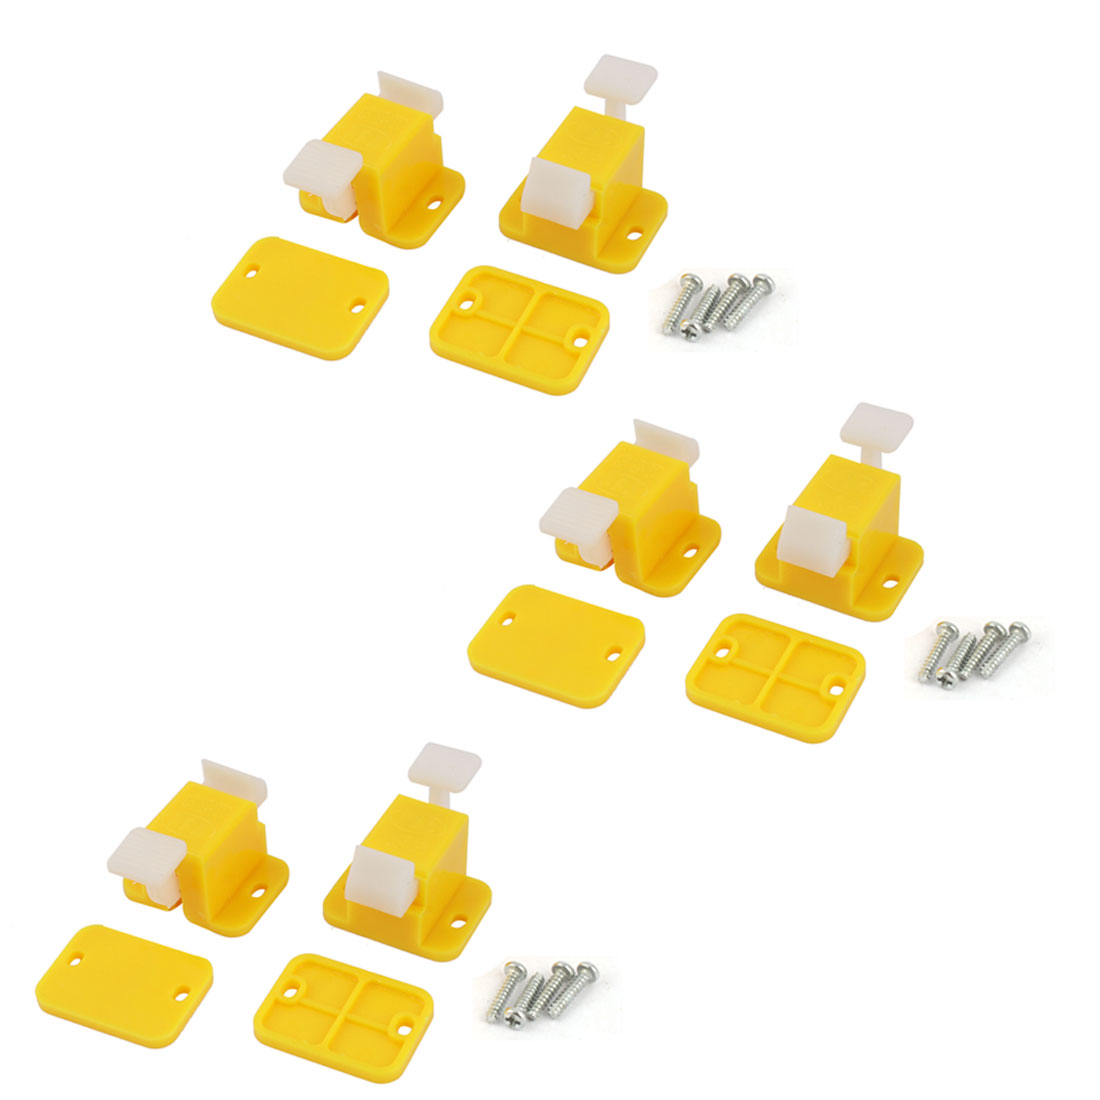 6 Pcs Plastic Prototype Test Fixture Jig Yellow White for PCB Board